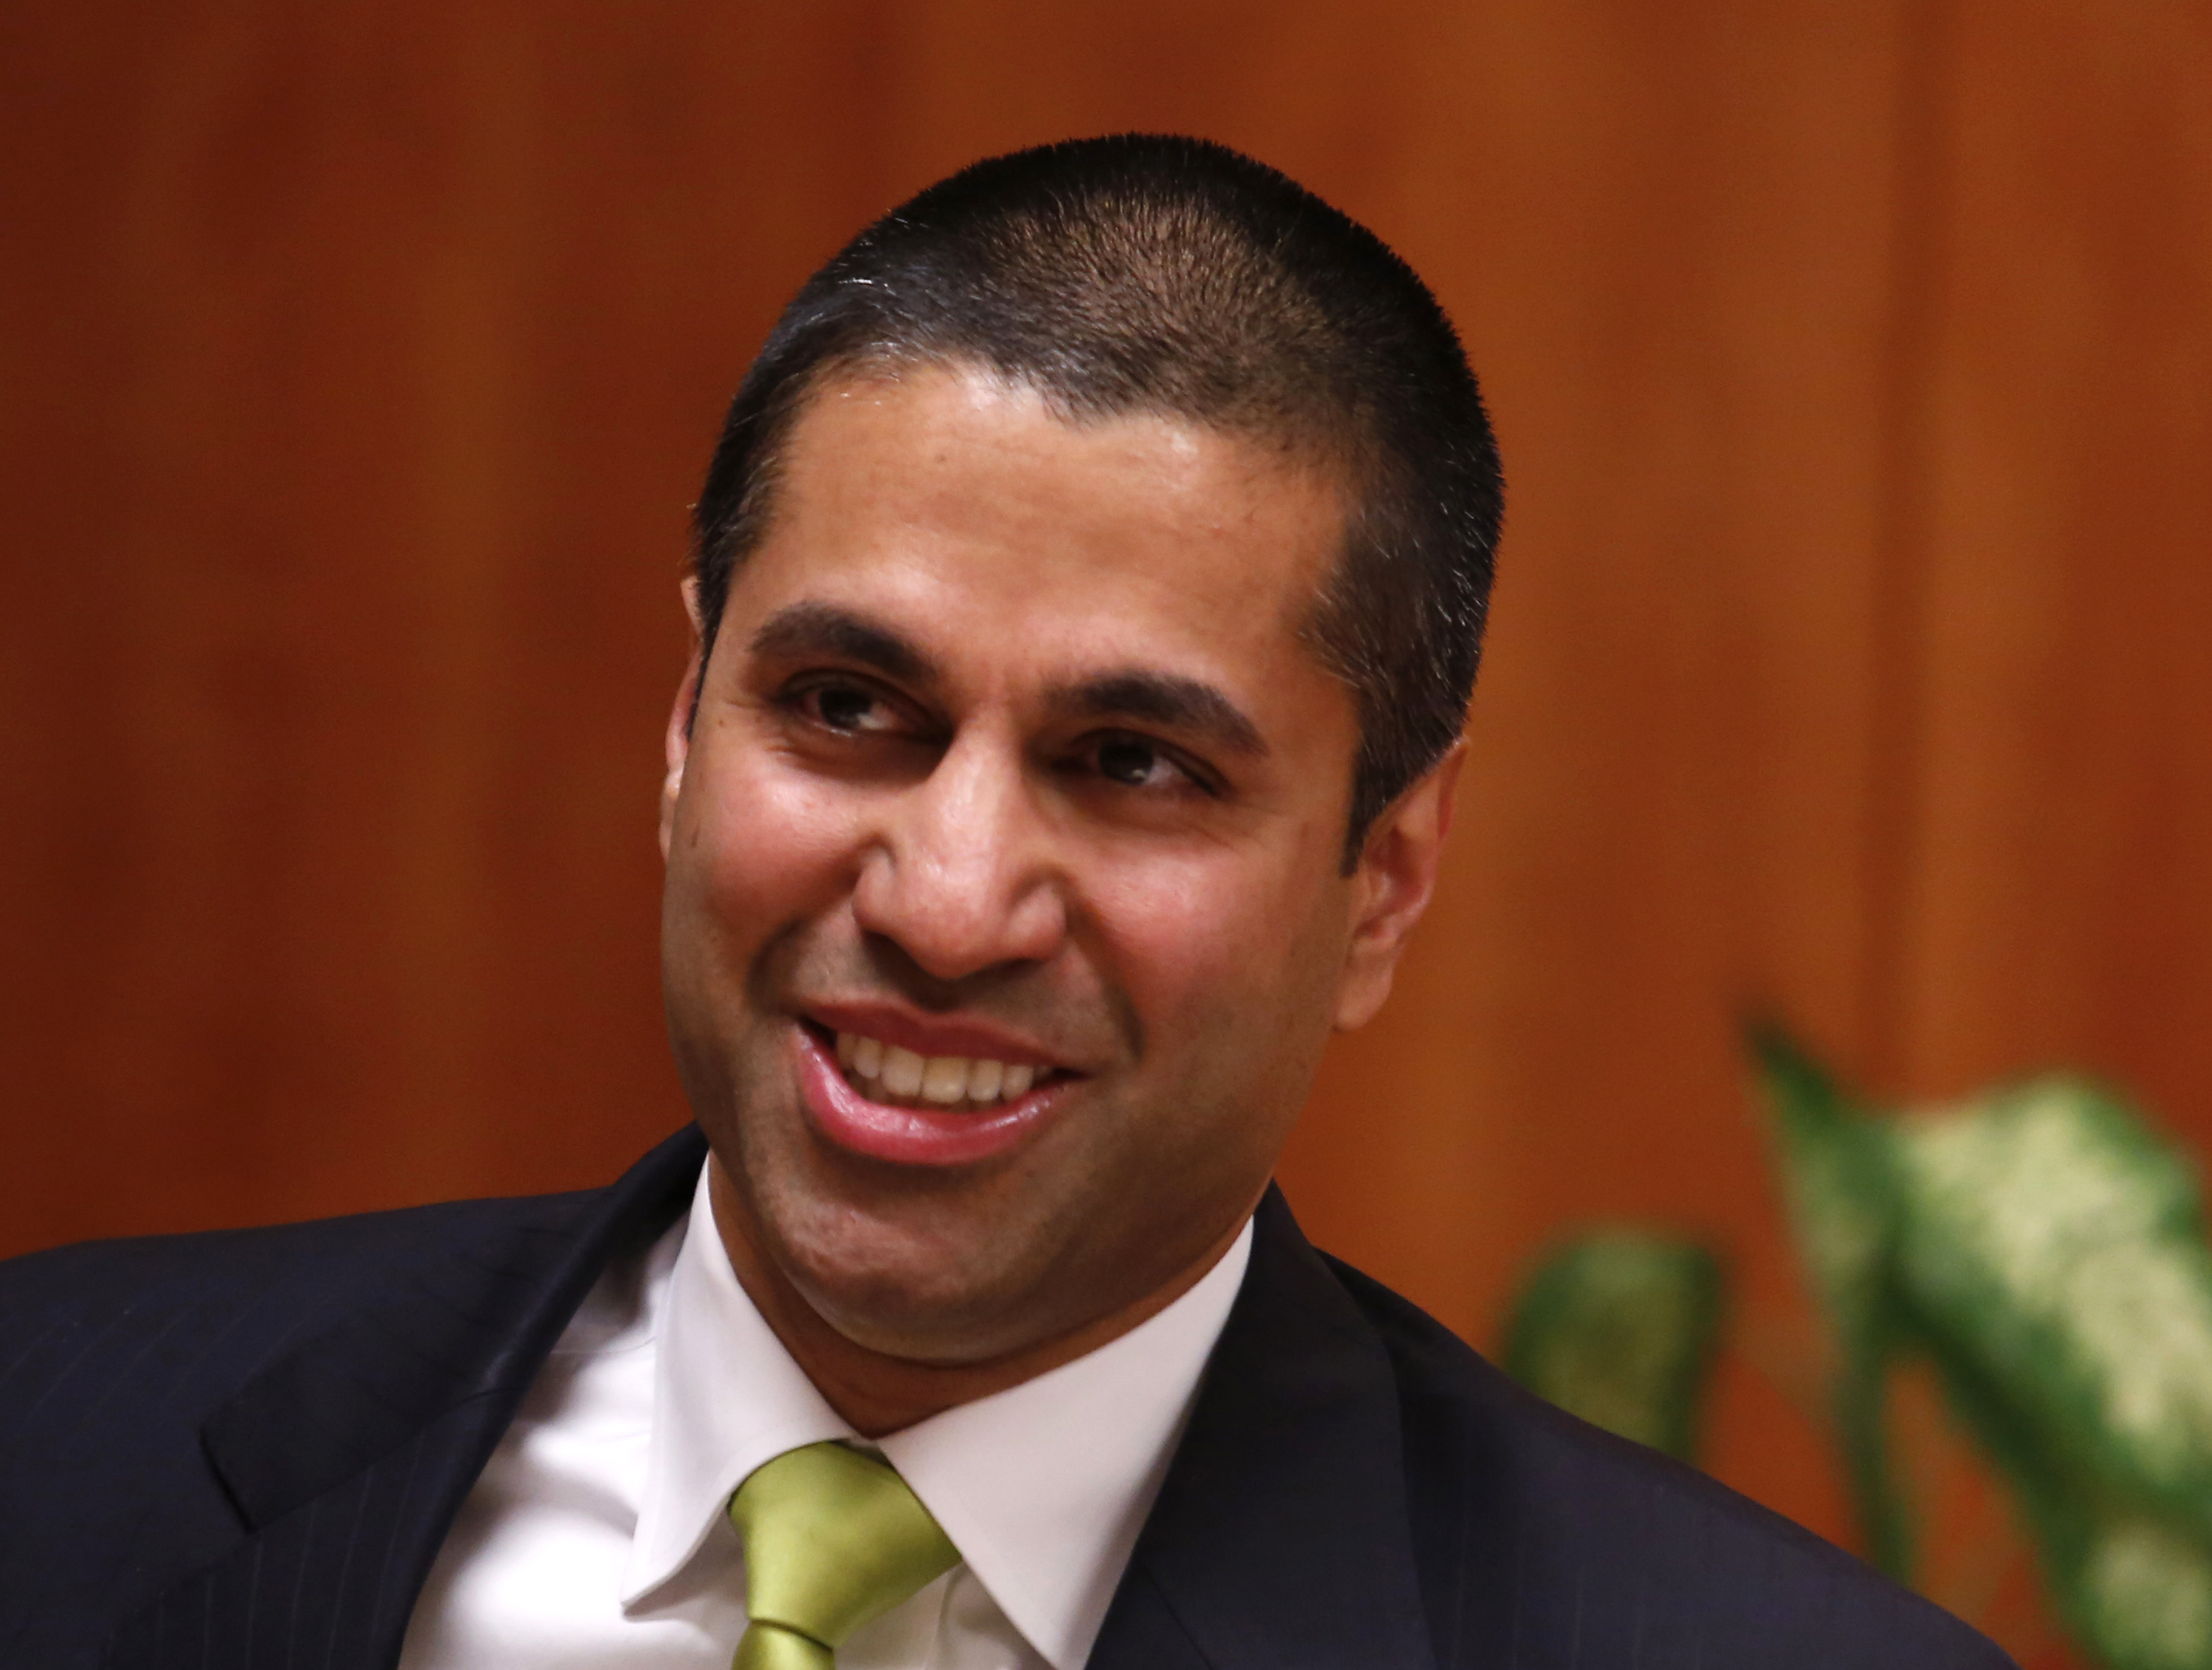 Federal Communications Commission (FCC) commissioner Ajit Pai arrives at a FCC Net Neutrality hearing